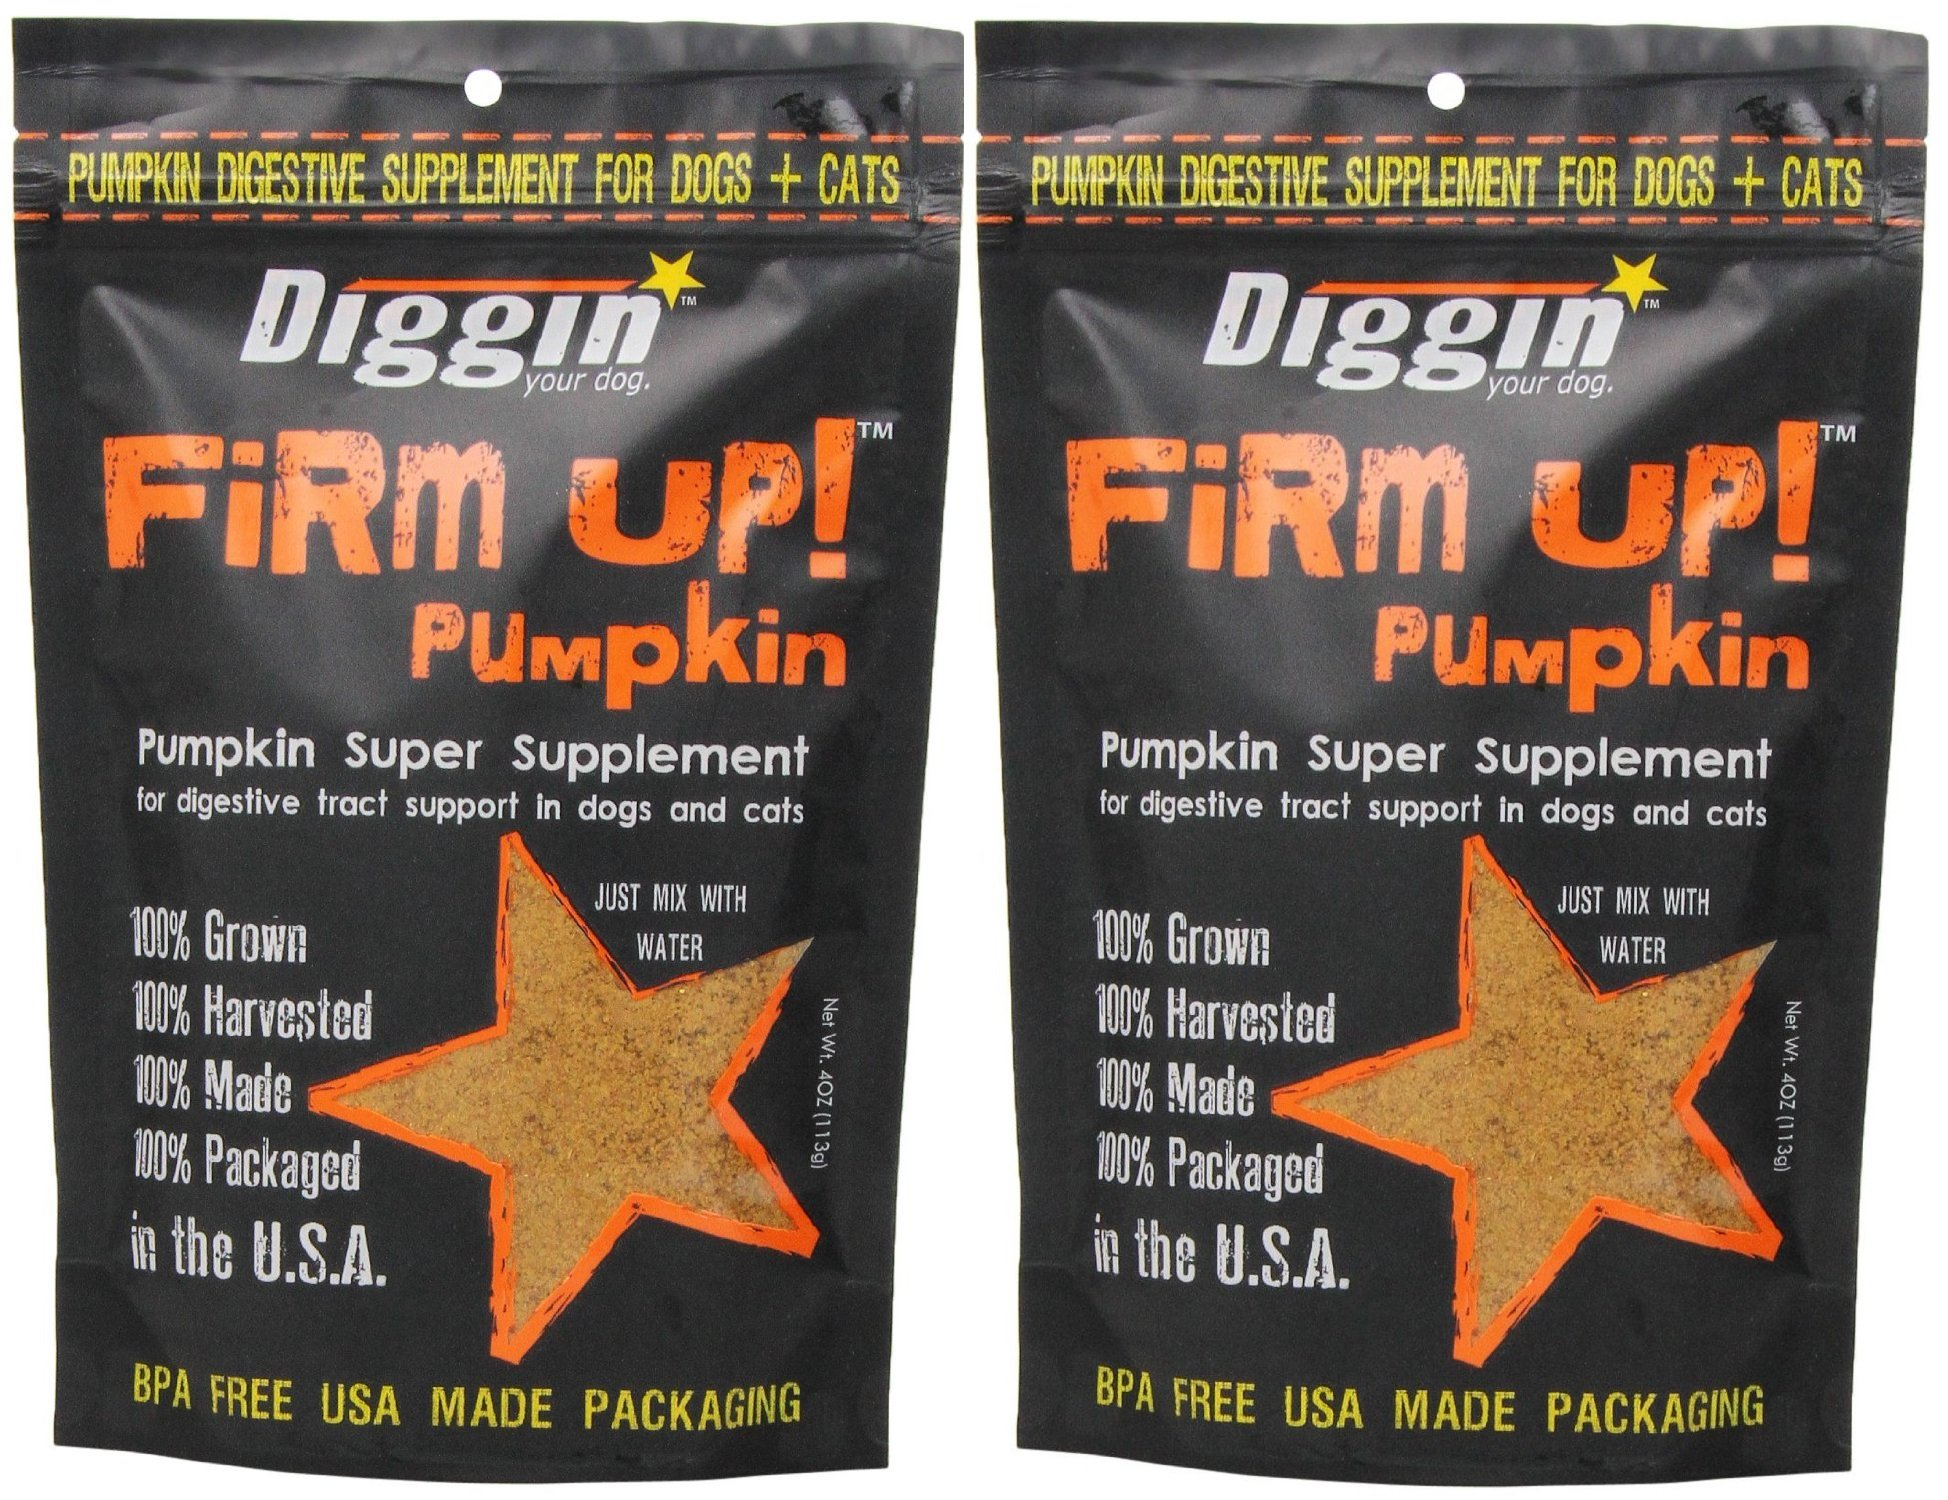 Diggin' Your Dog Firm Up Pumpkin Super Supplement for Digestive Tract Health for Dogs, 4-Ounce - 2 Pack